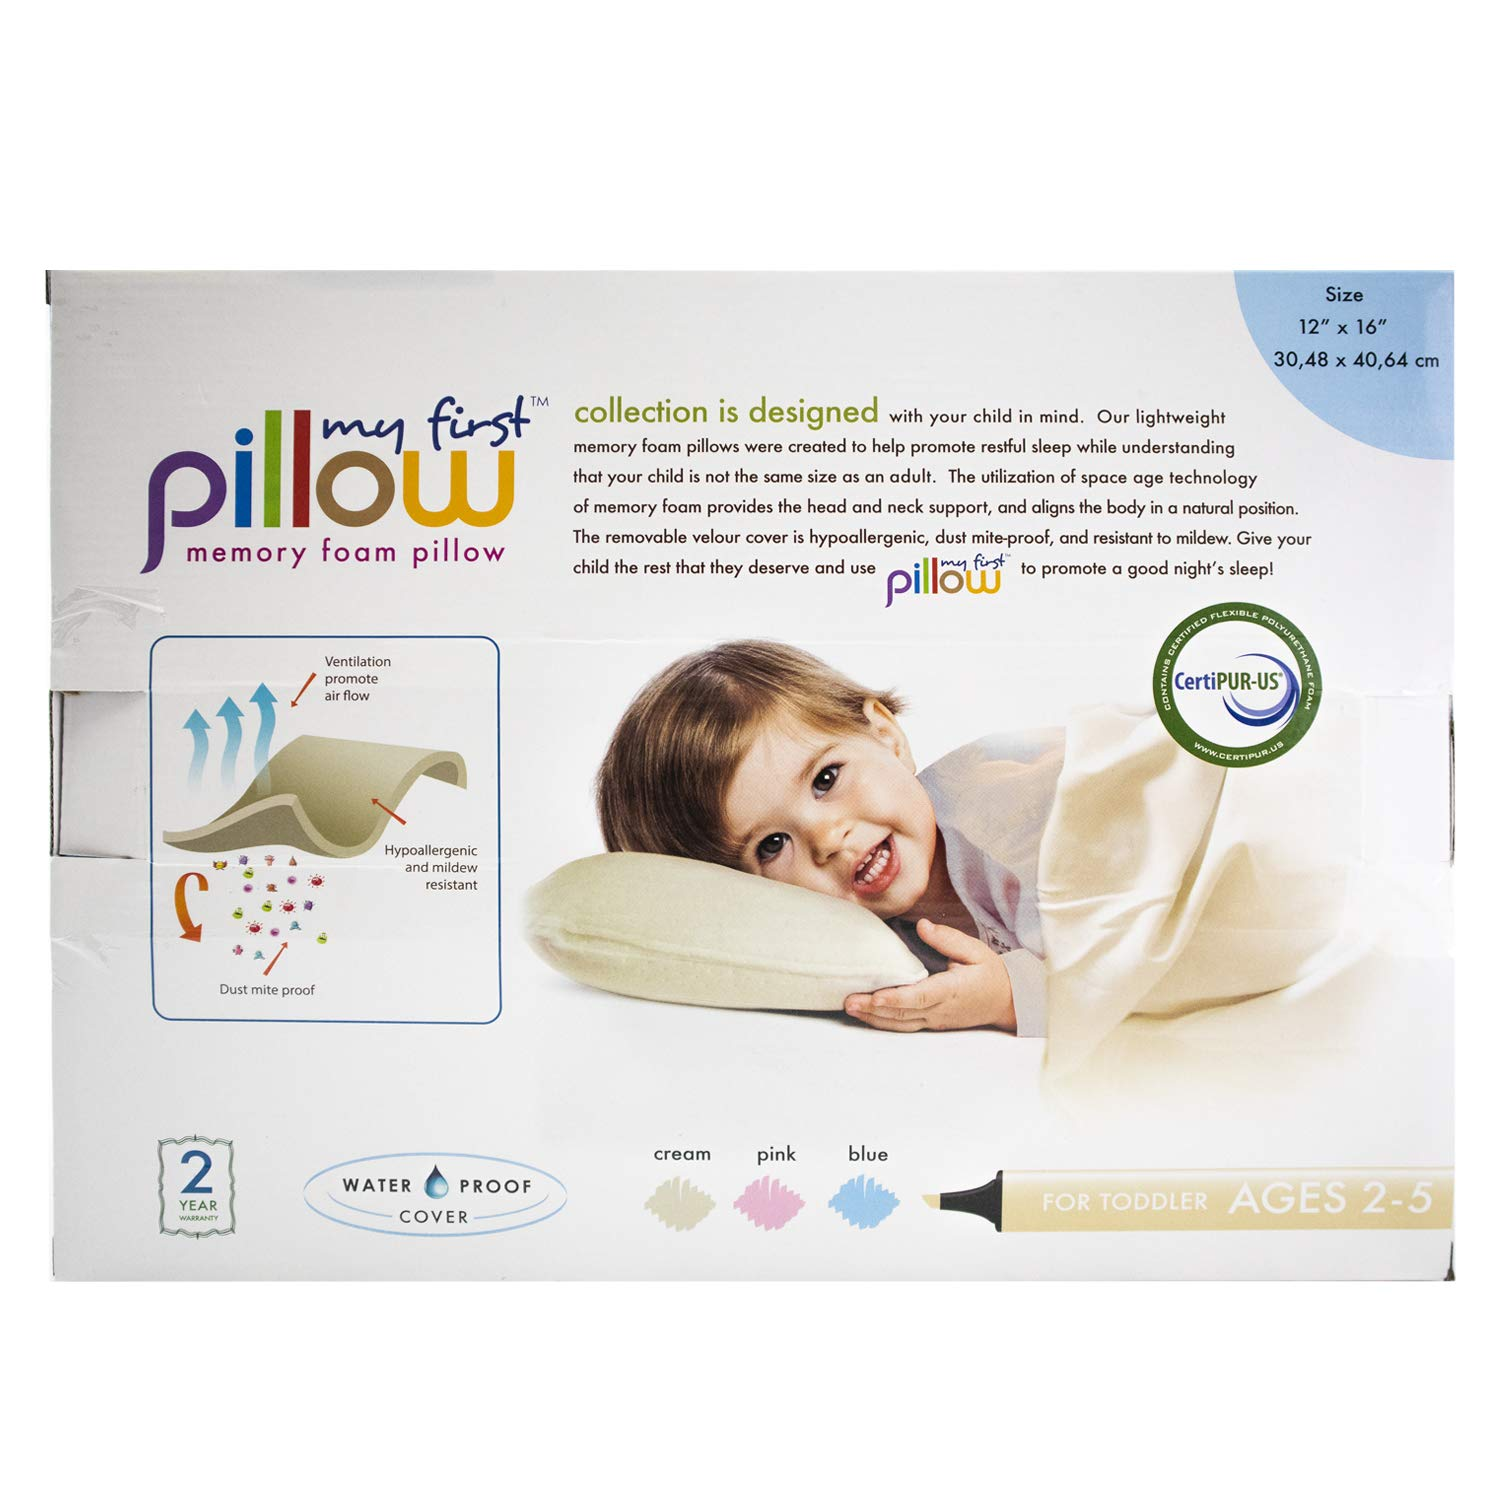 12x16 My First Pillow Memory Foam Pillow Water Proof Bonus Pillow Case Included Cream